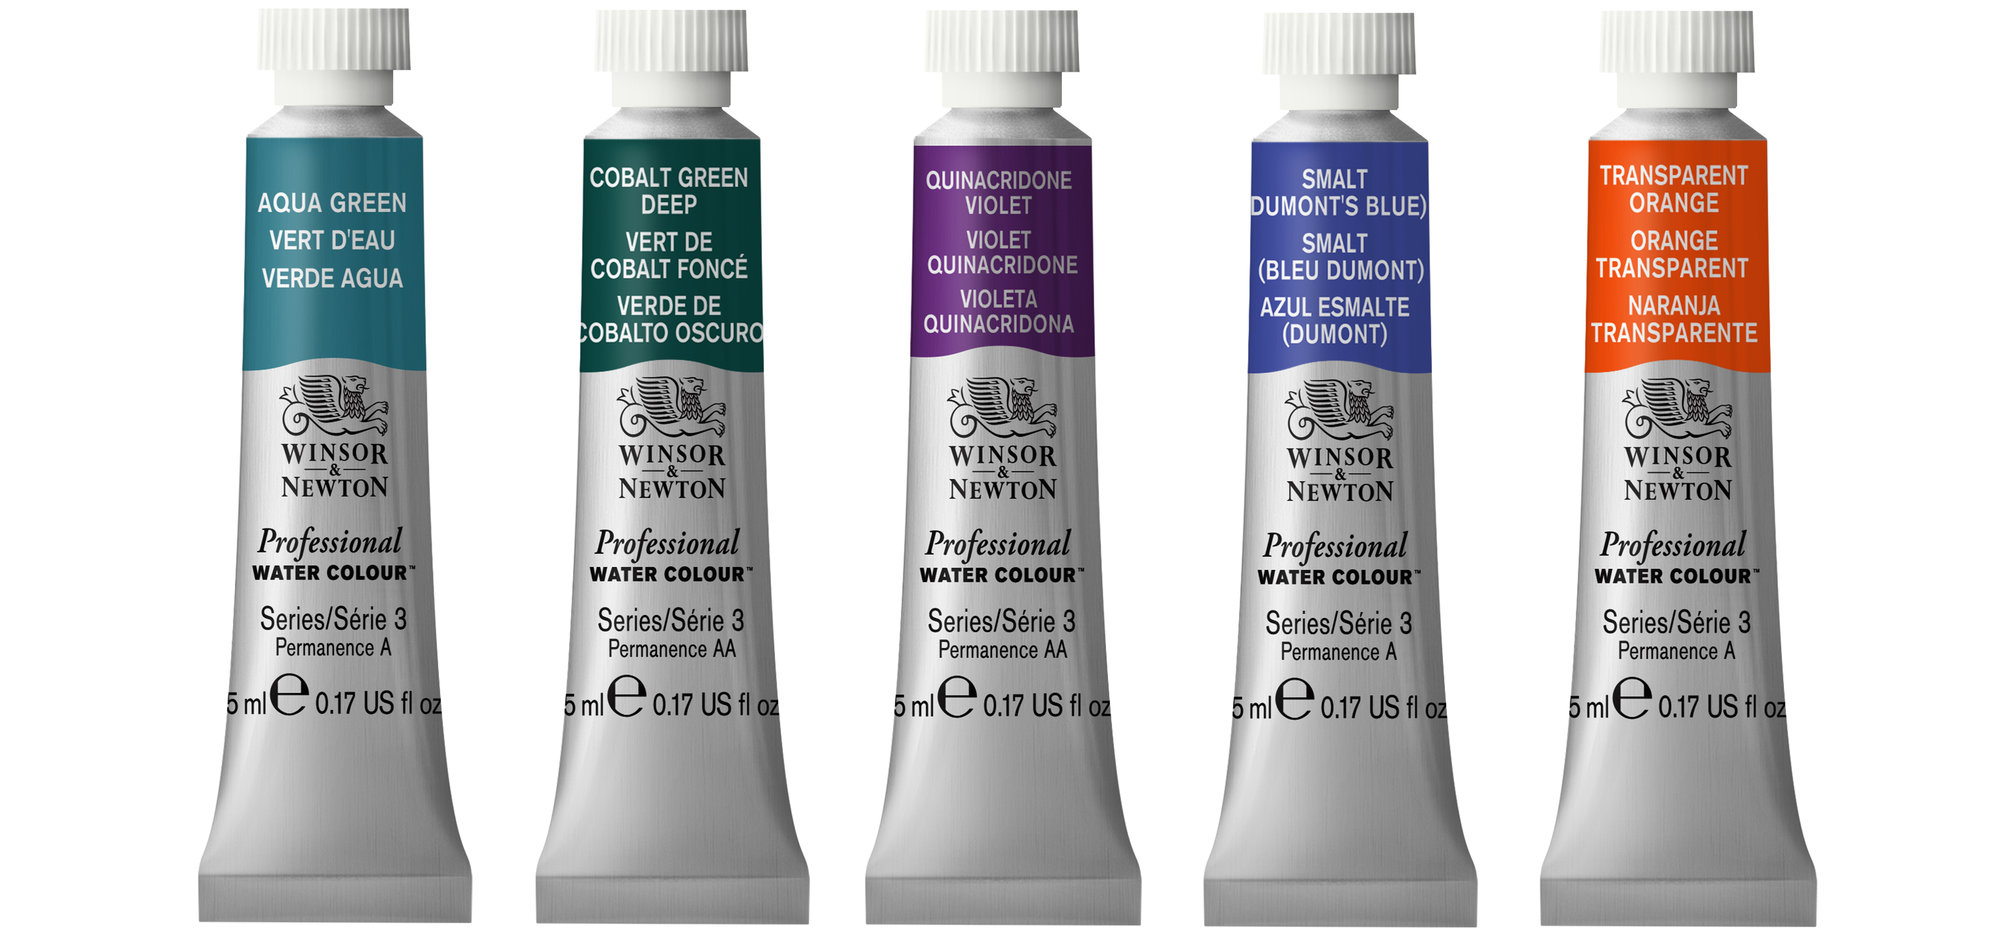 W&N PROFESSIONAL WATERCOLOUR 5ML GROUP.JPG